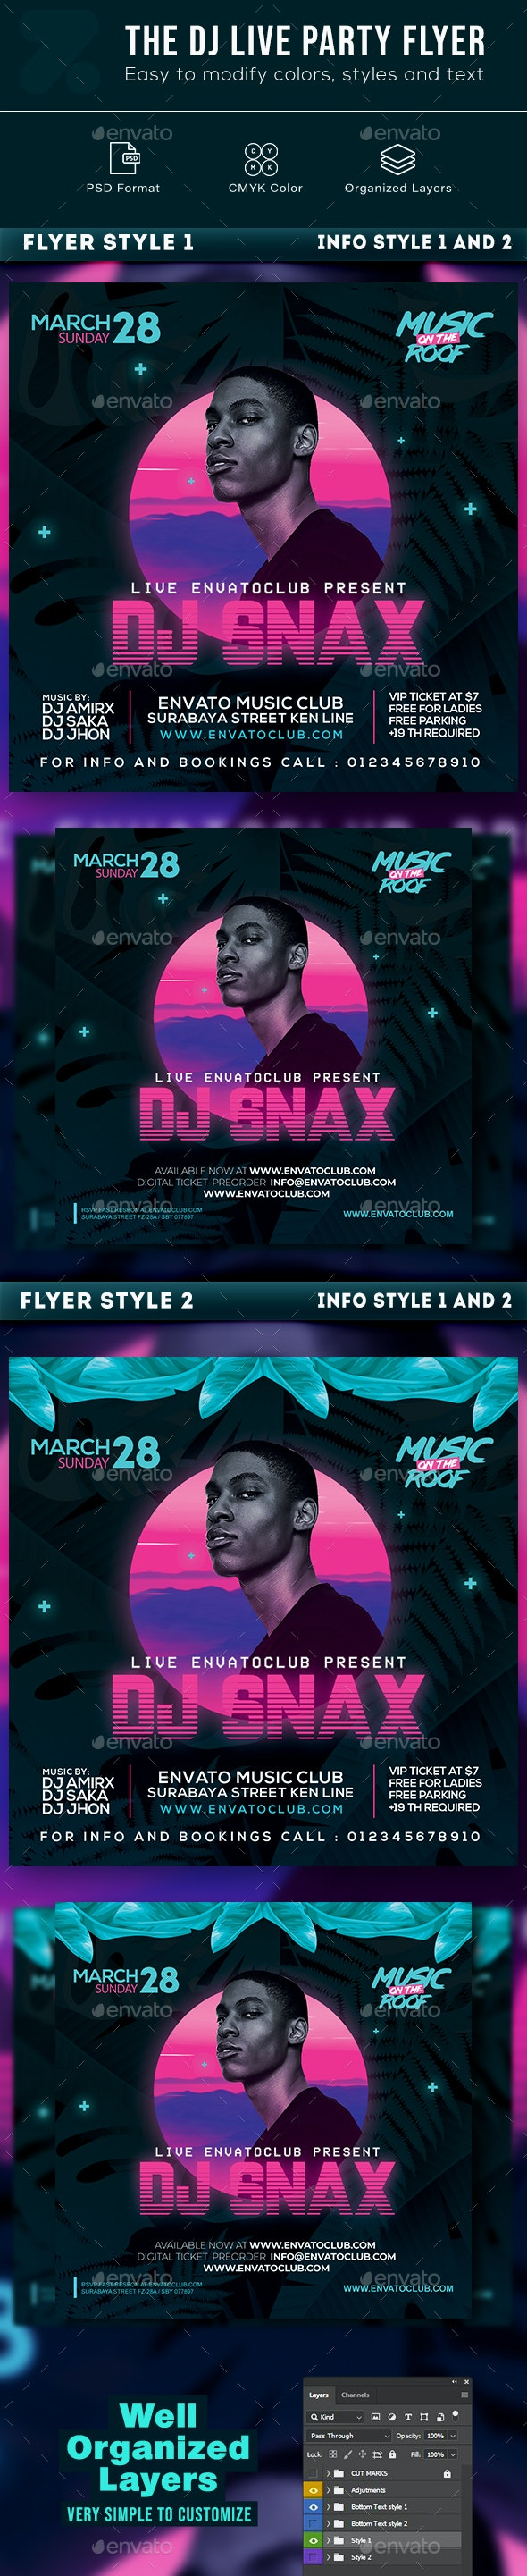 The Dj Live Party Flyer - Events Flyers